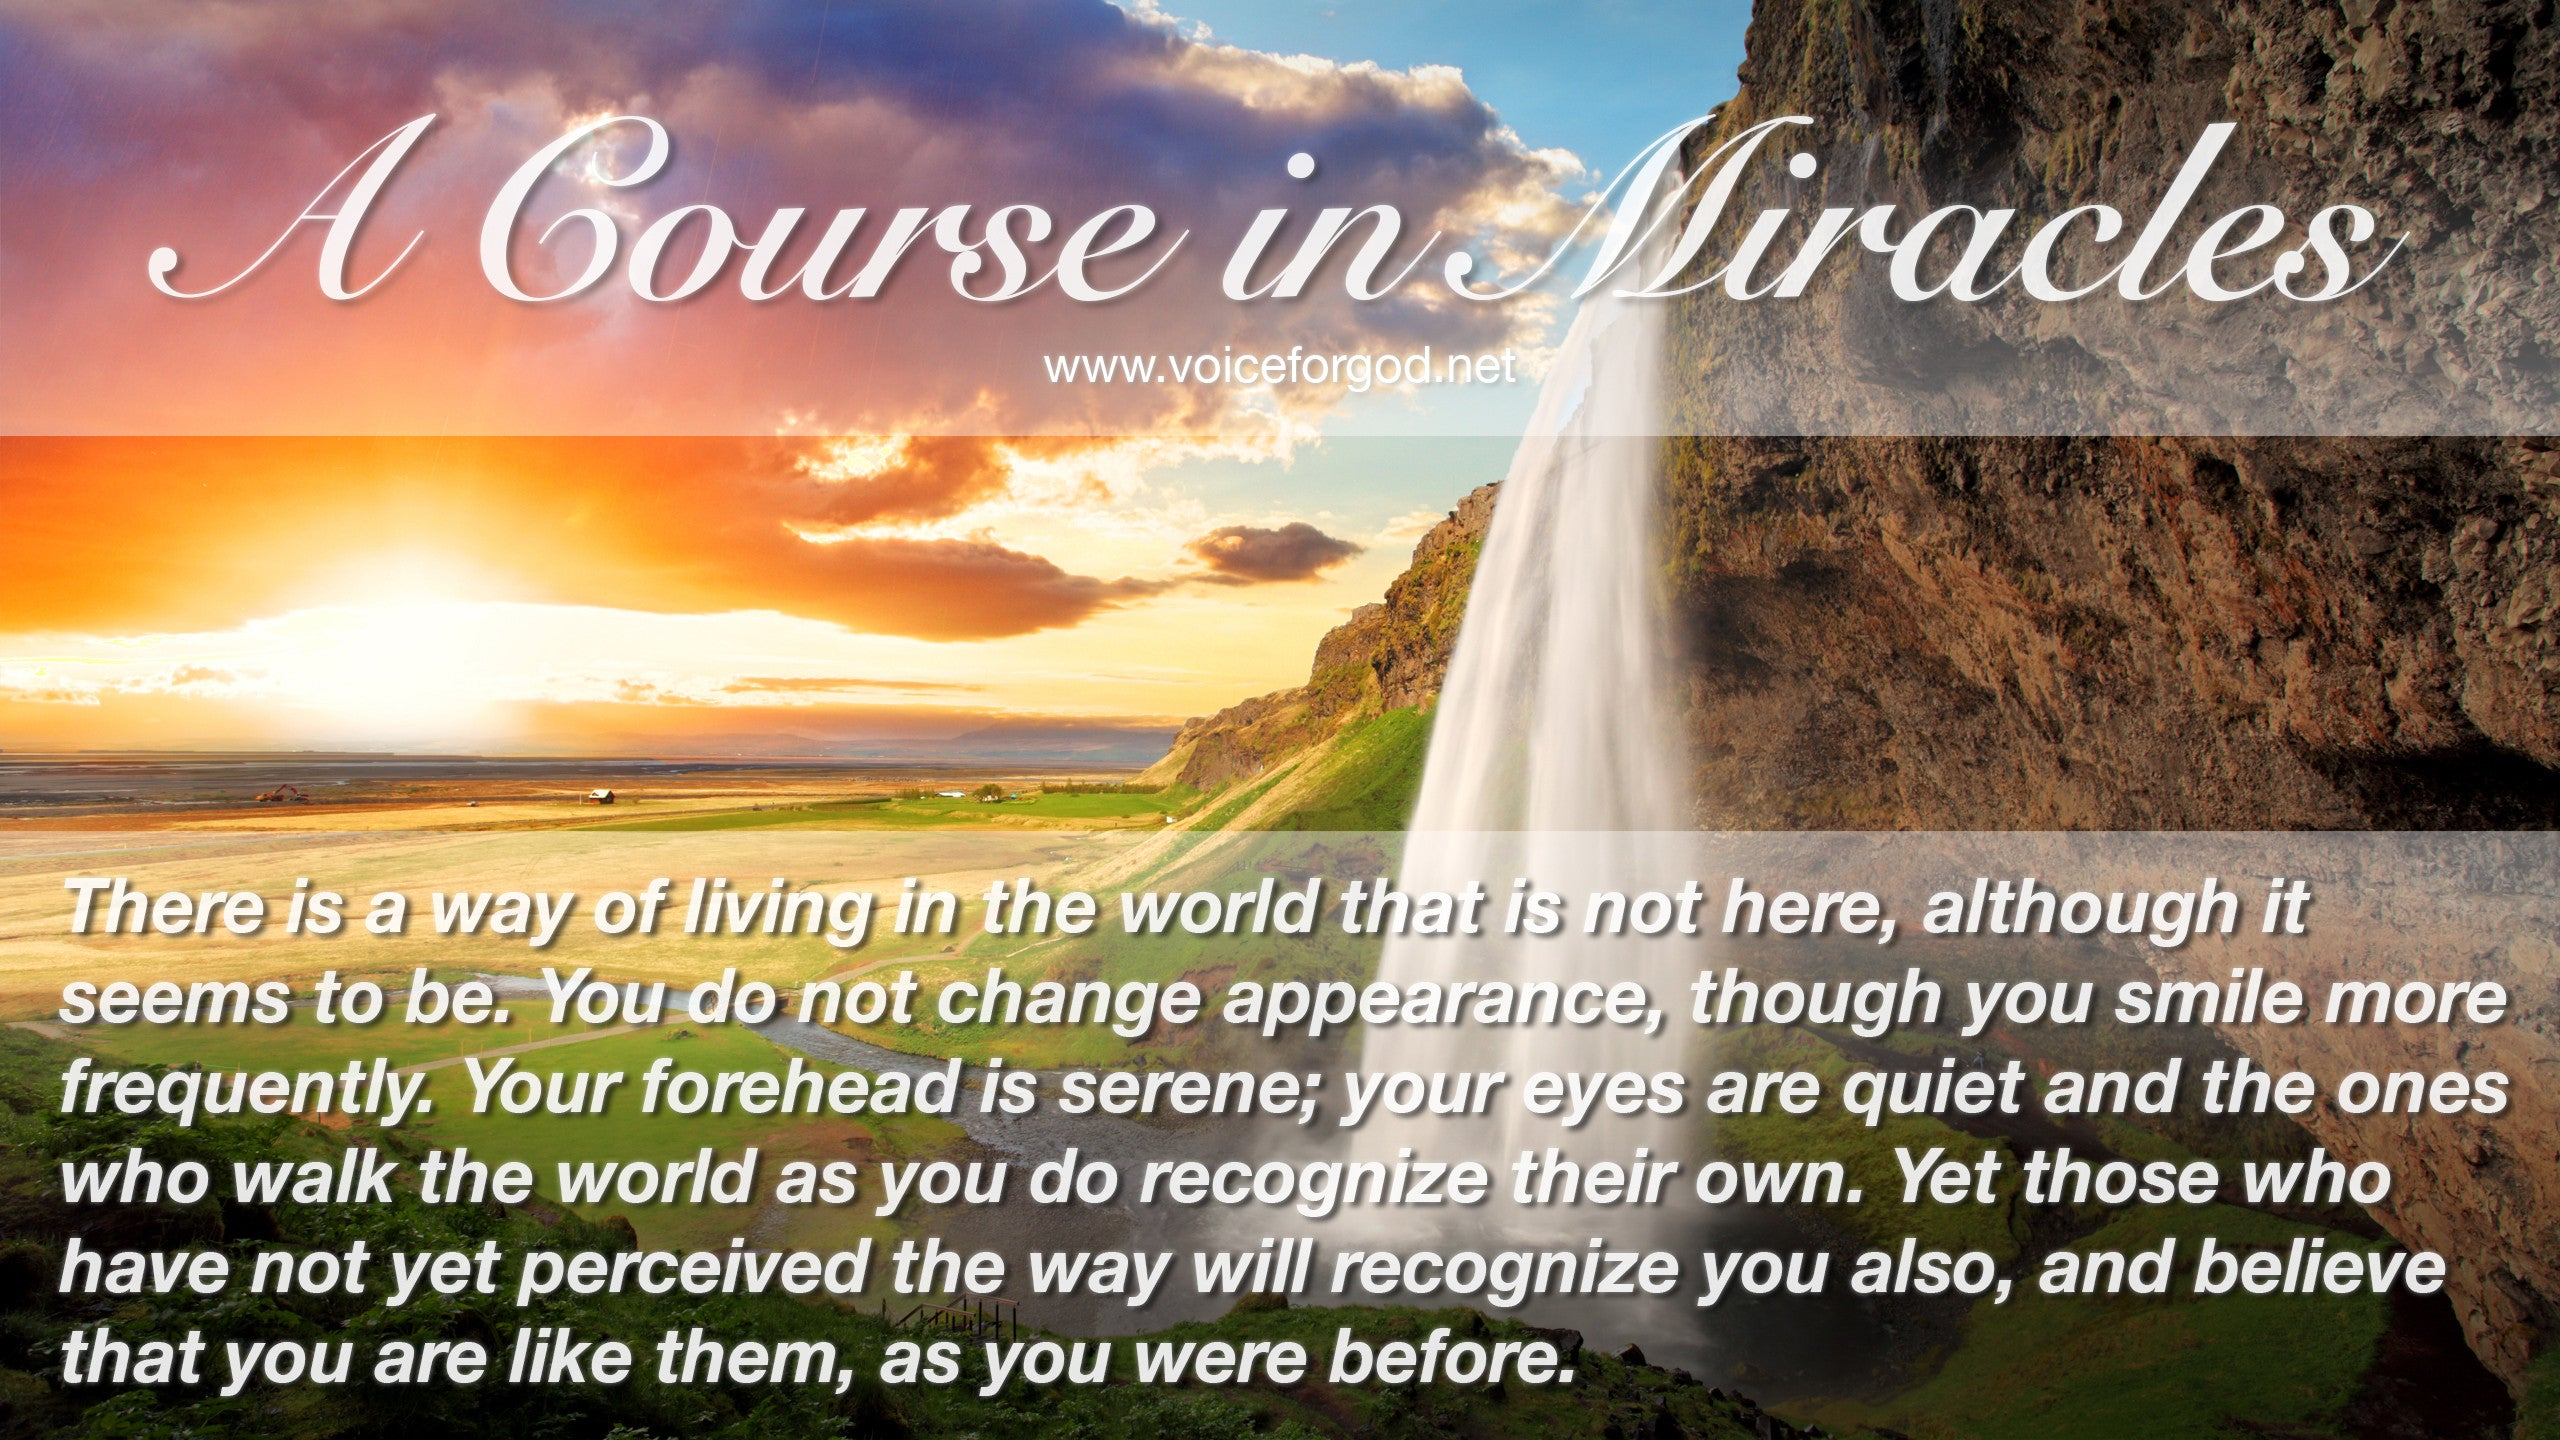 Acim Acim Quote 1014 A Course In Miracles Quotes Voice For God